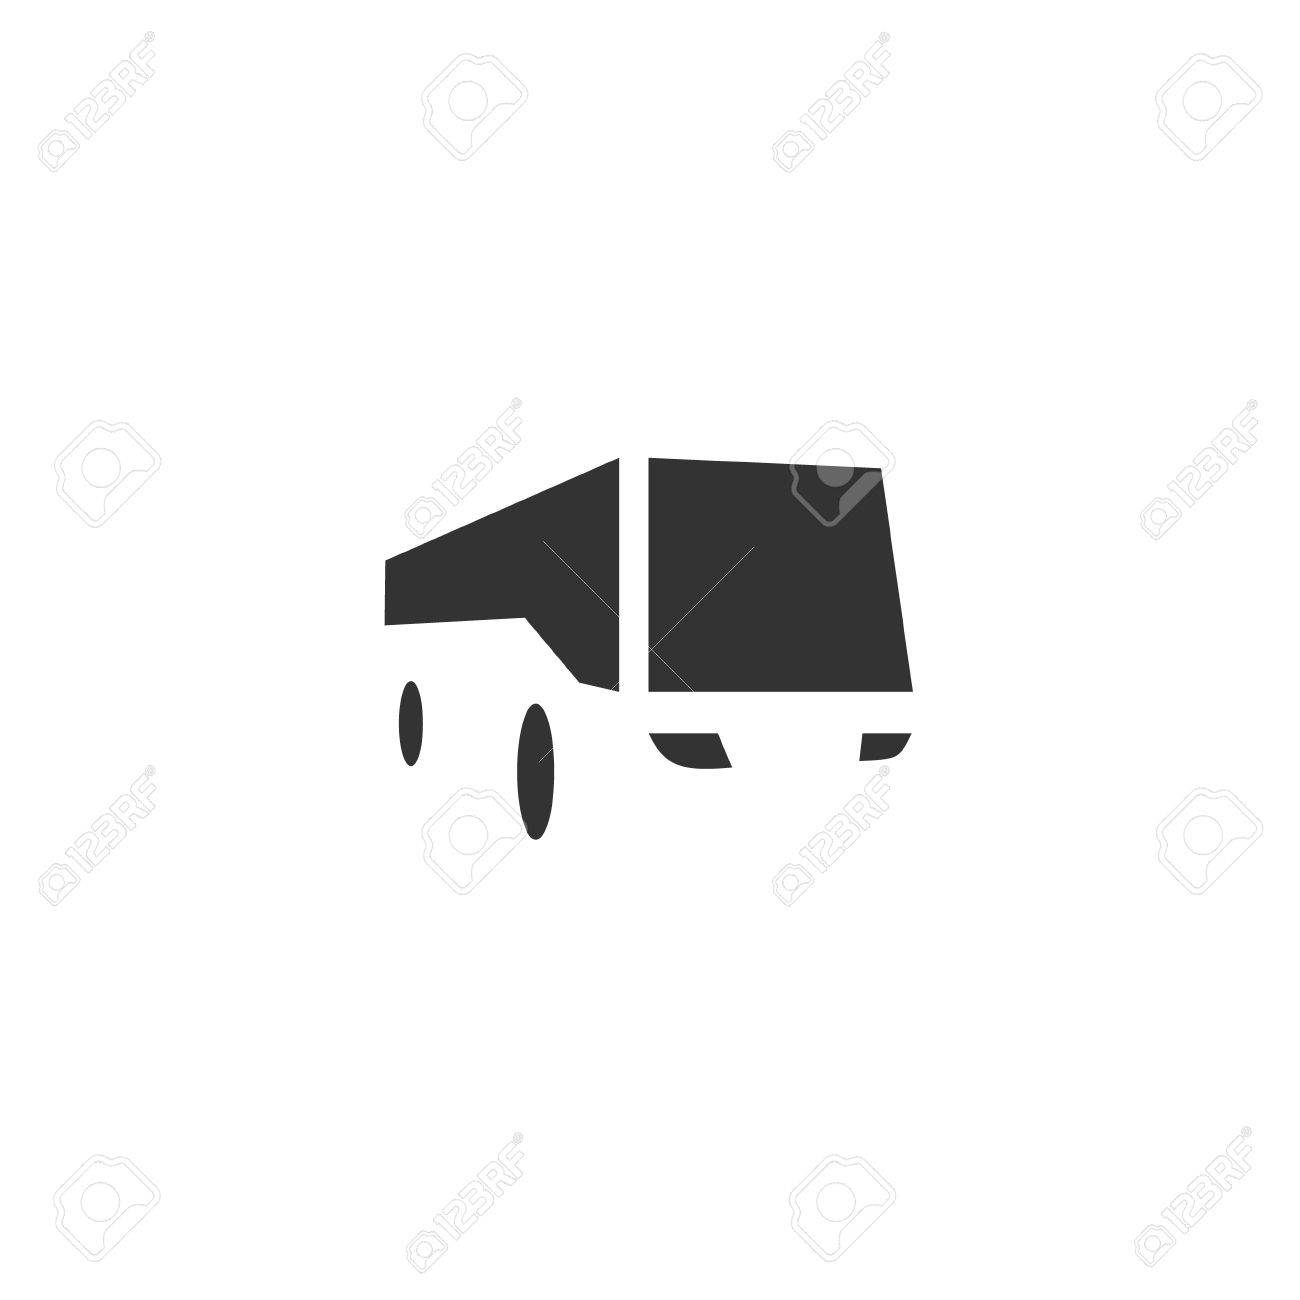 bus logo in negative space quality modern flat style design for your